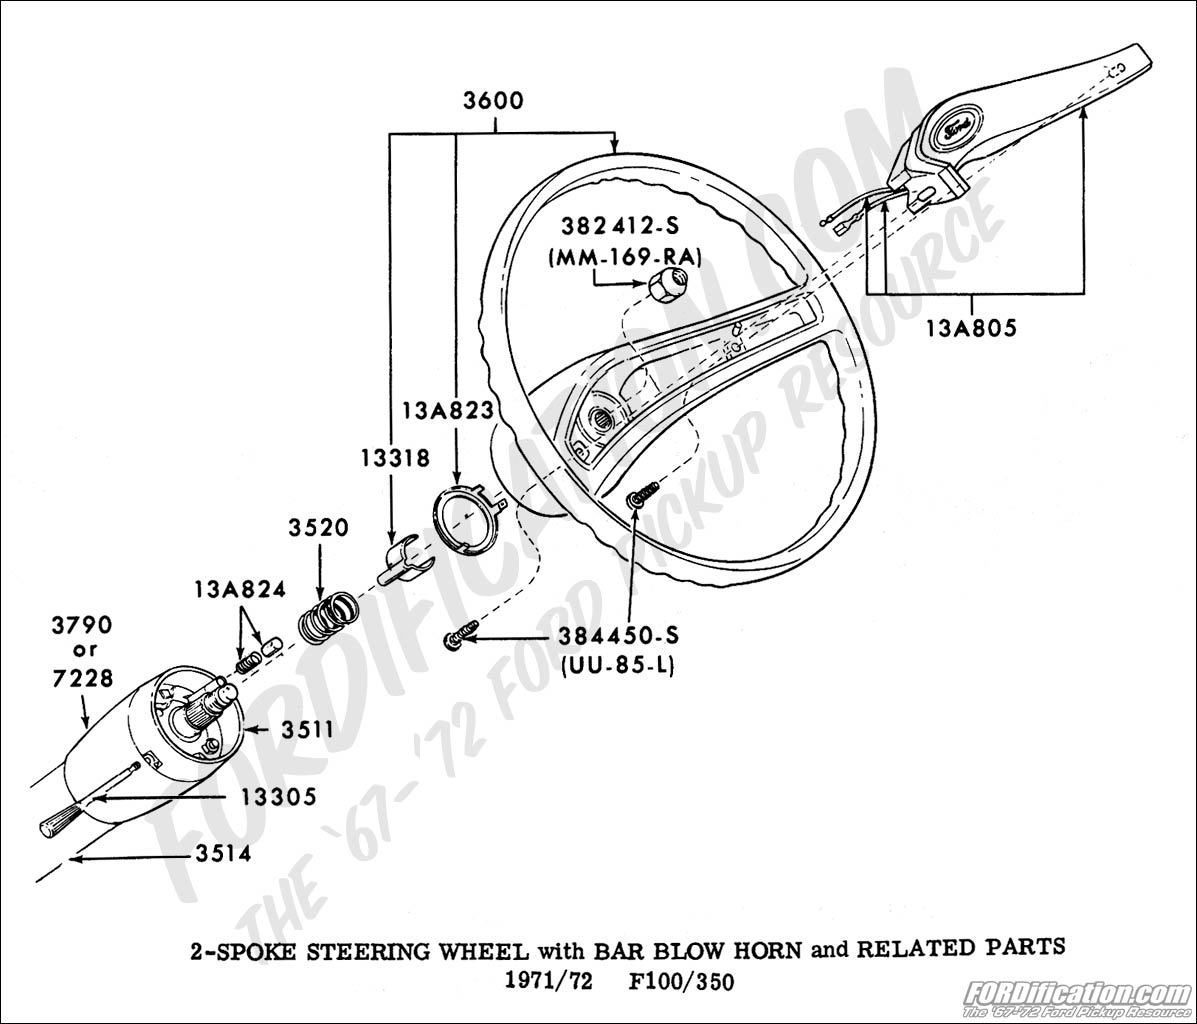 1991 S10 Steering Column Wiring Diagram Free Download Reveolution New Beetle Parts Schematic Dodge 360 Engine Image For Tilt Ford